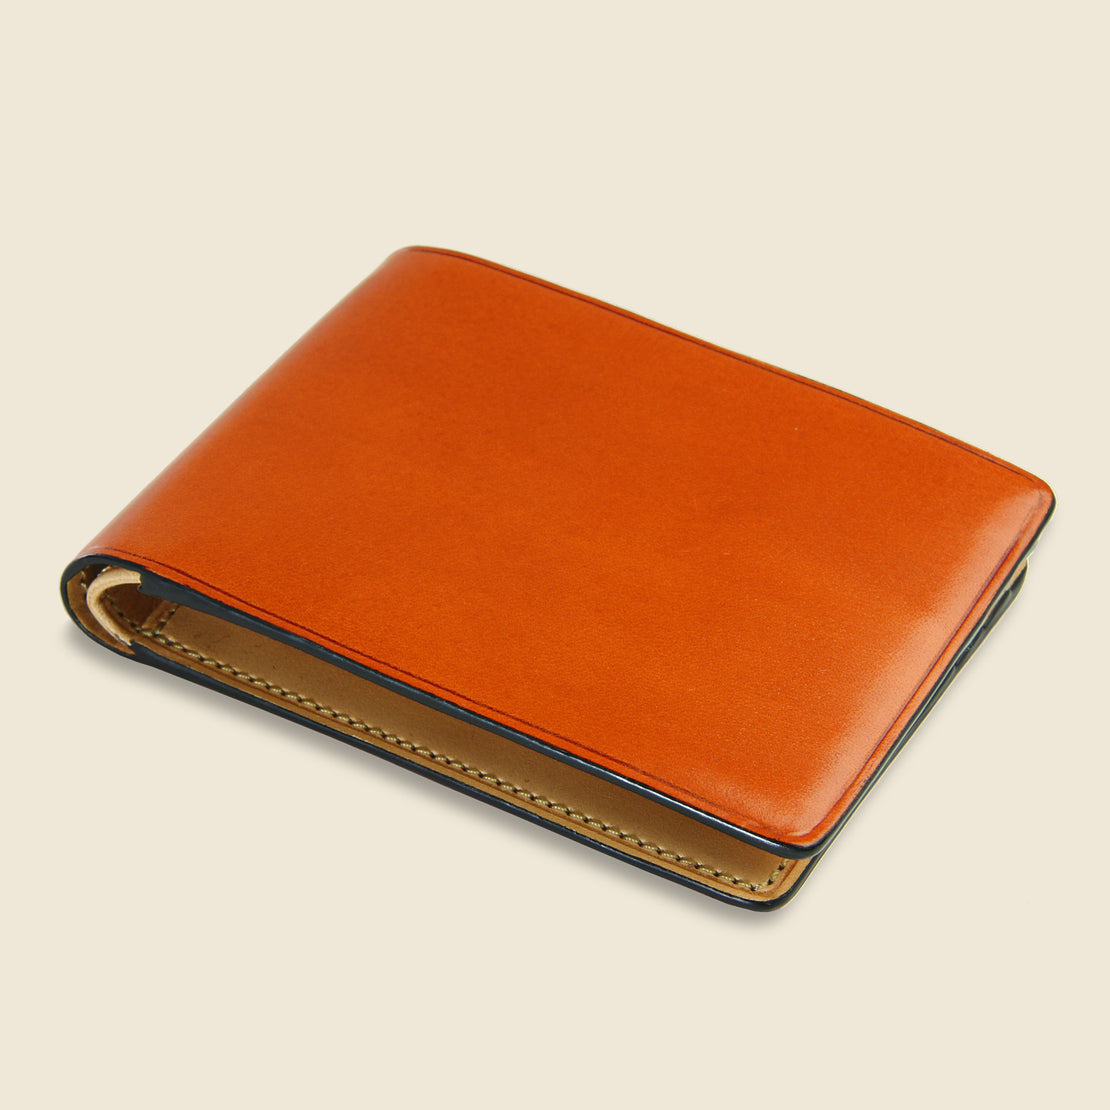 Small Bi-Fold Wallet - Orange - Il Bussetto - STAG Provisions - Accessories - Wallets